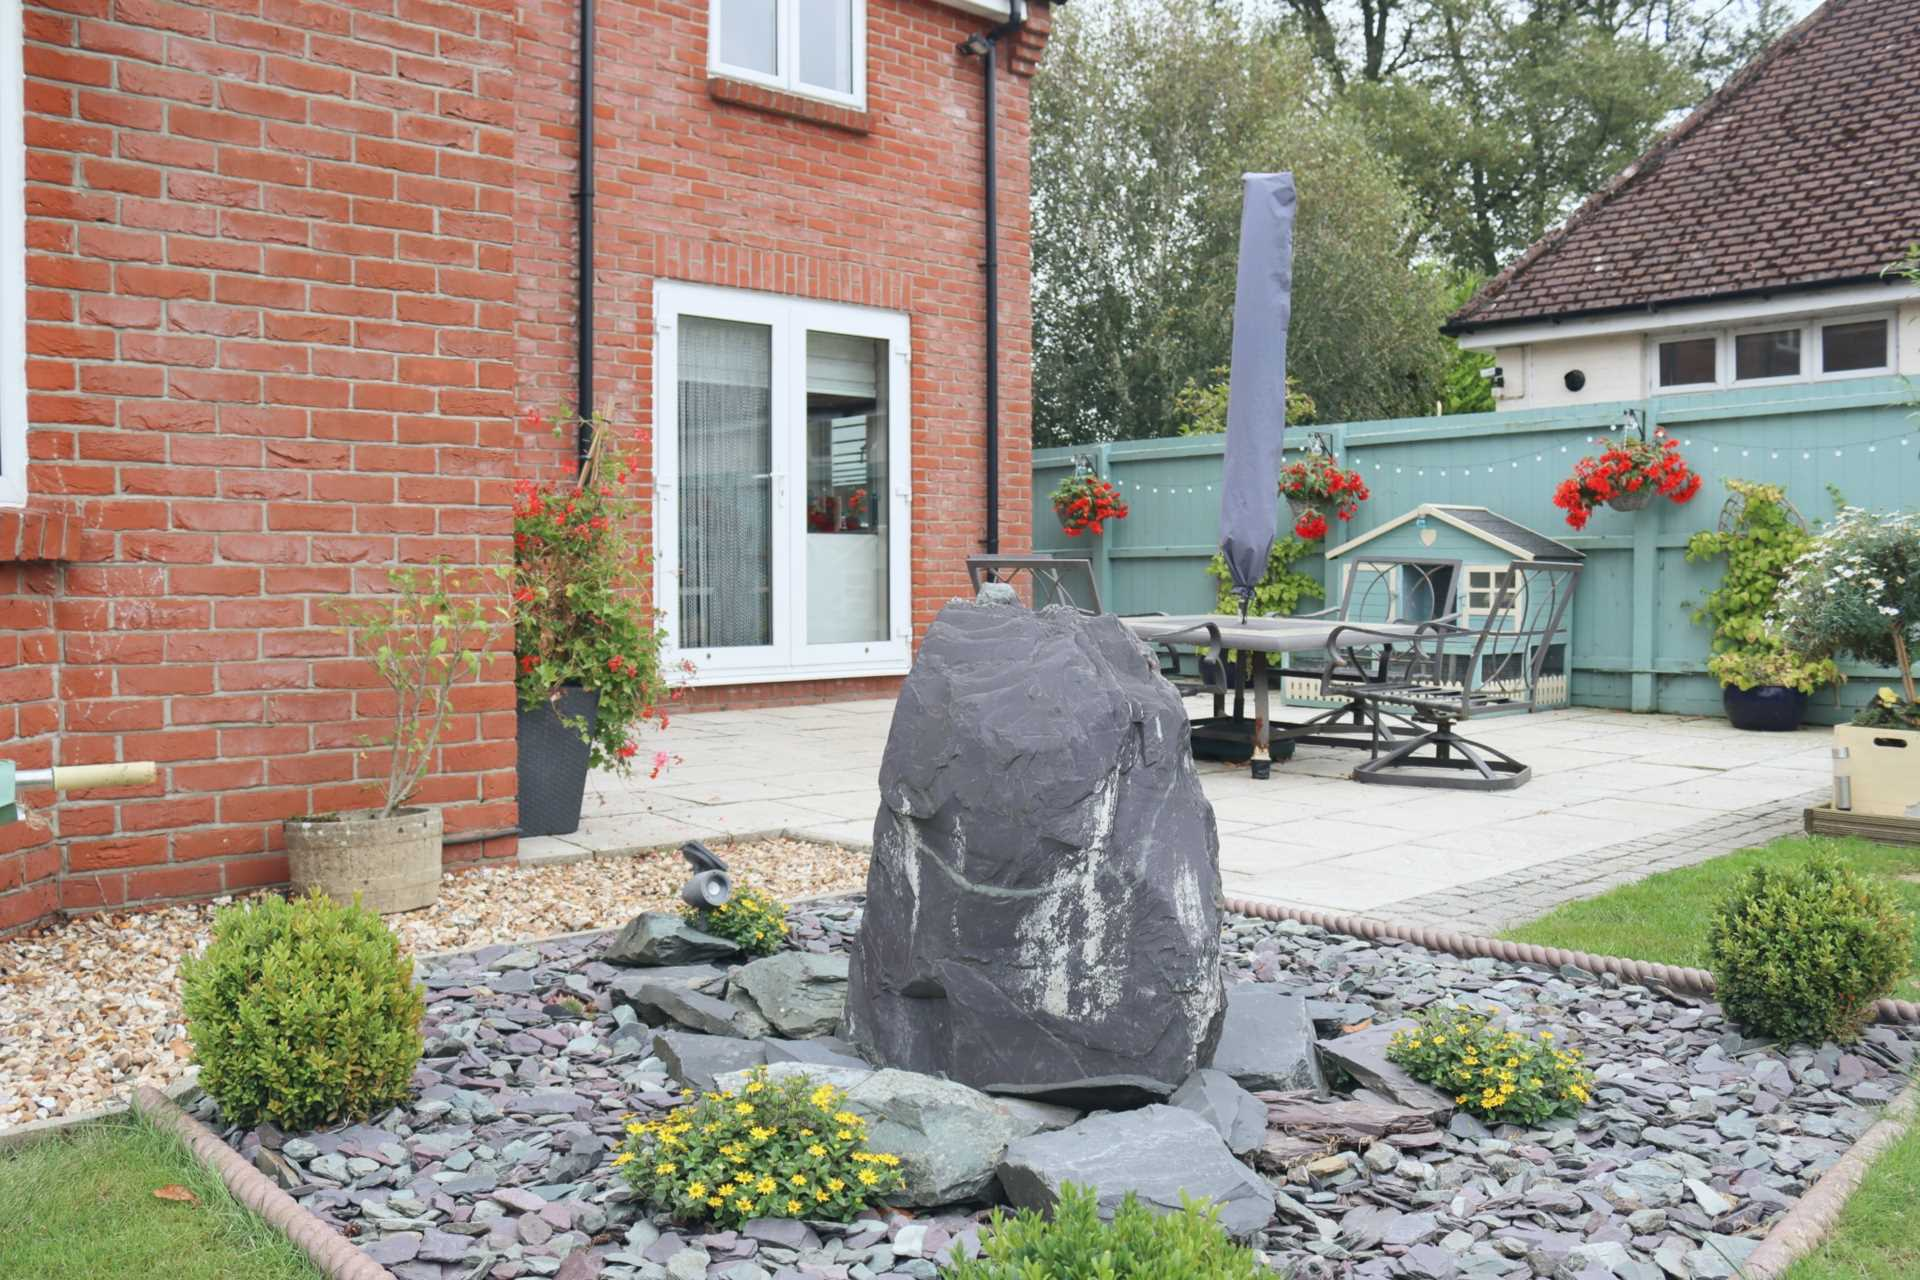 4 bed detached house for sale in Maple Vale, Whatcombe Lane, Winterborne Whitechurch, Blandford Forum  - Property Image 18